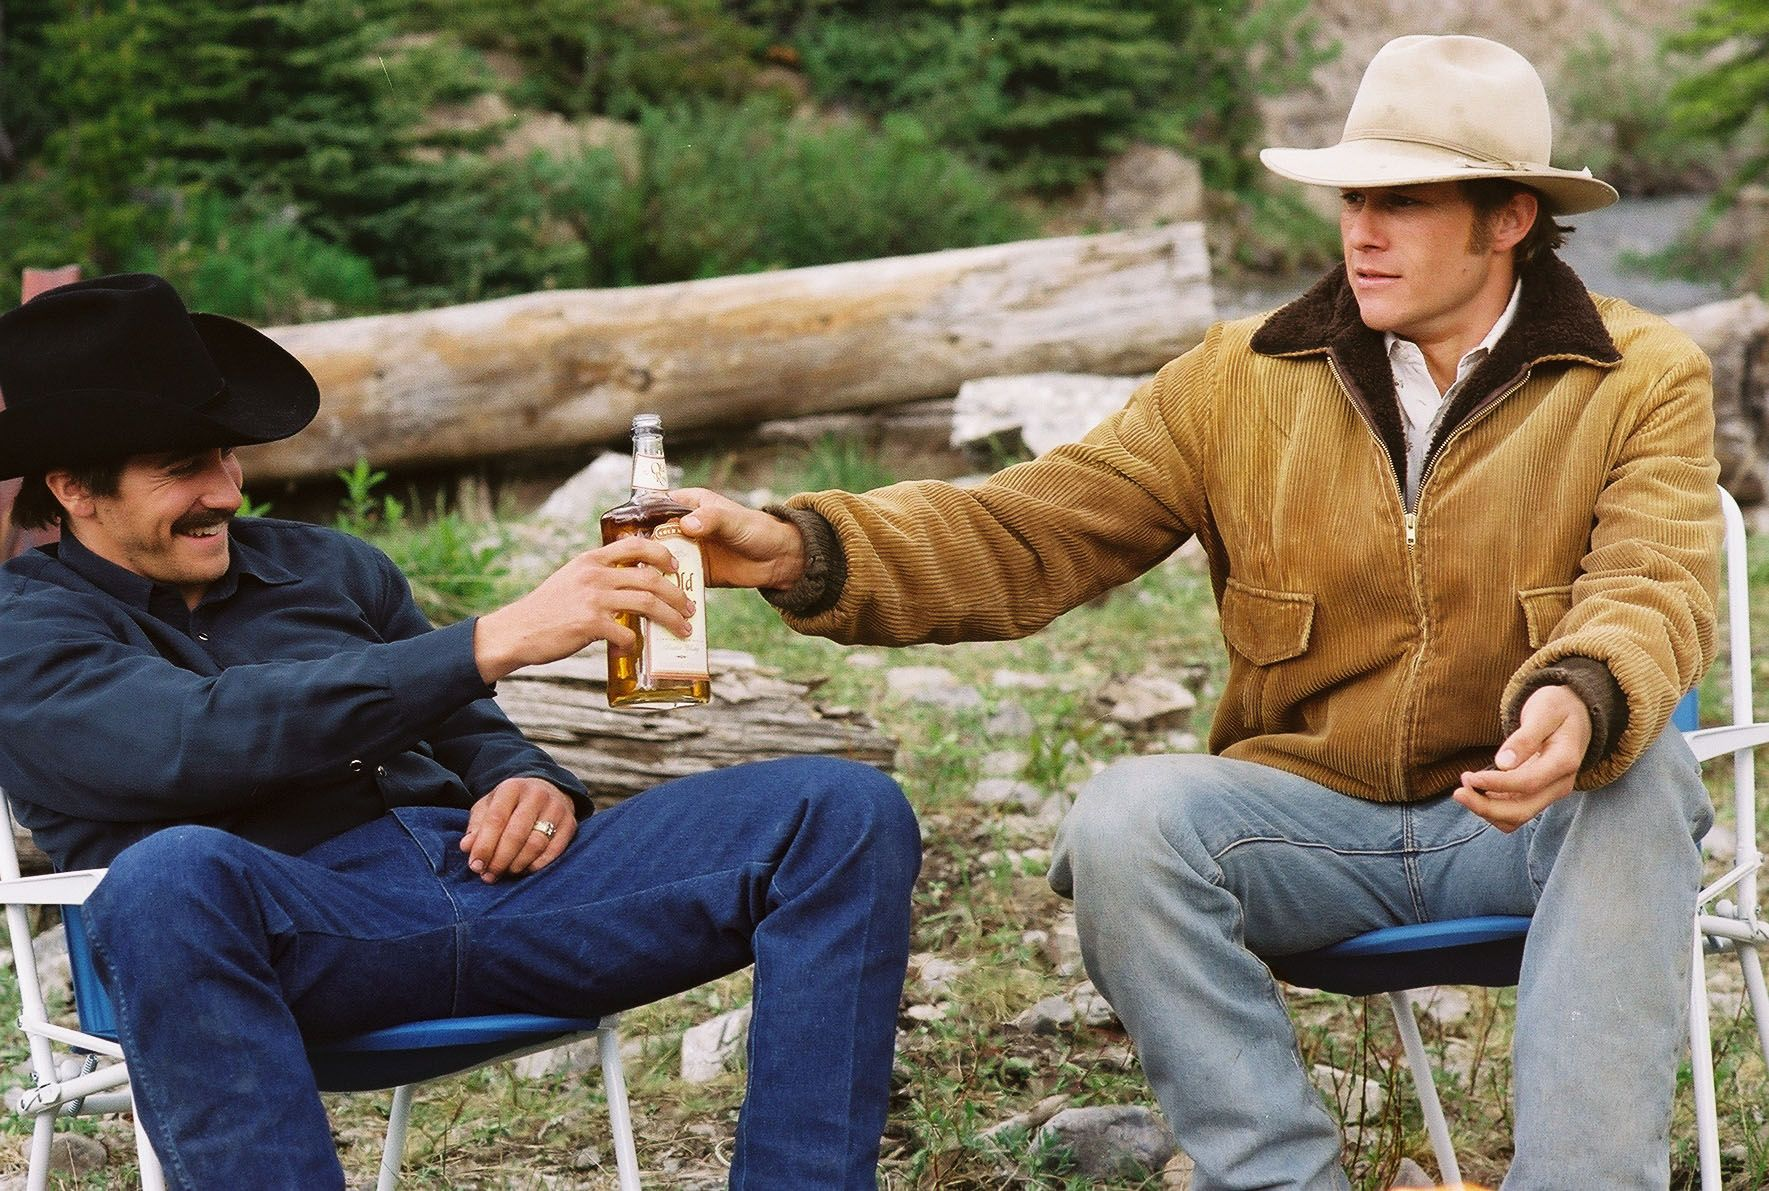 brokeback mountain essay images about brokeback mountain